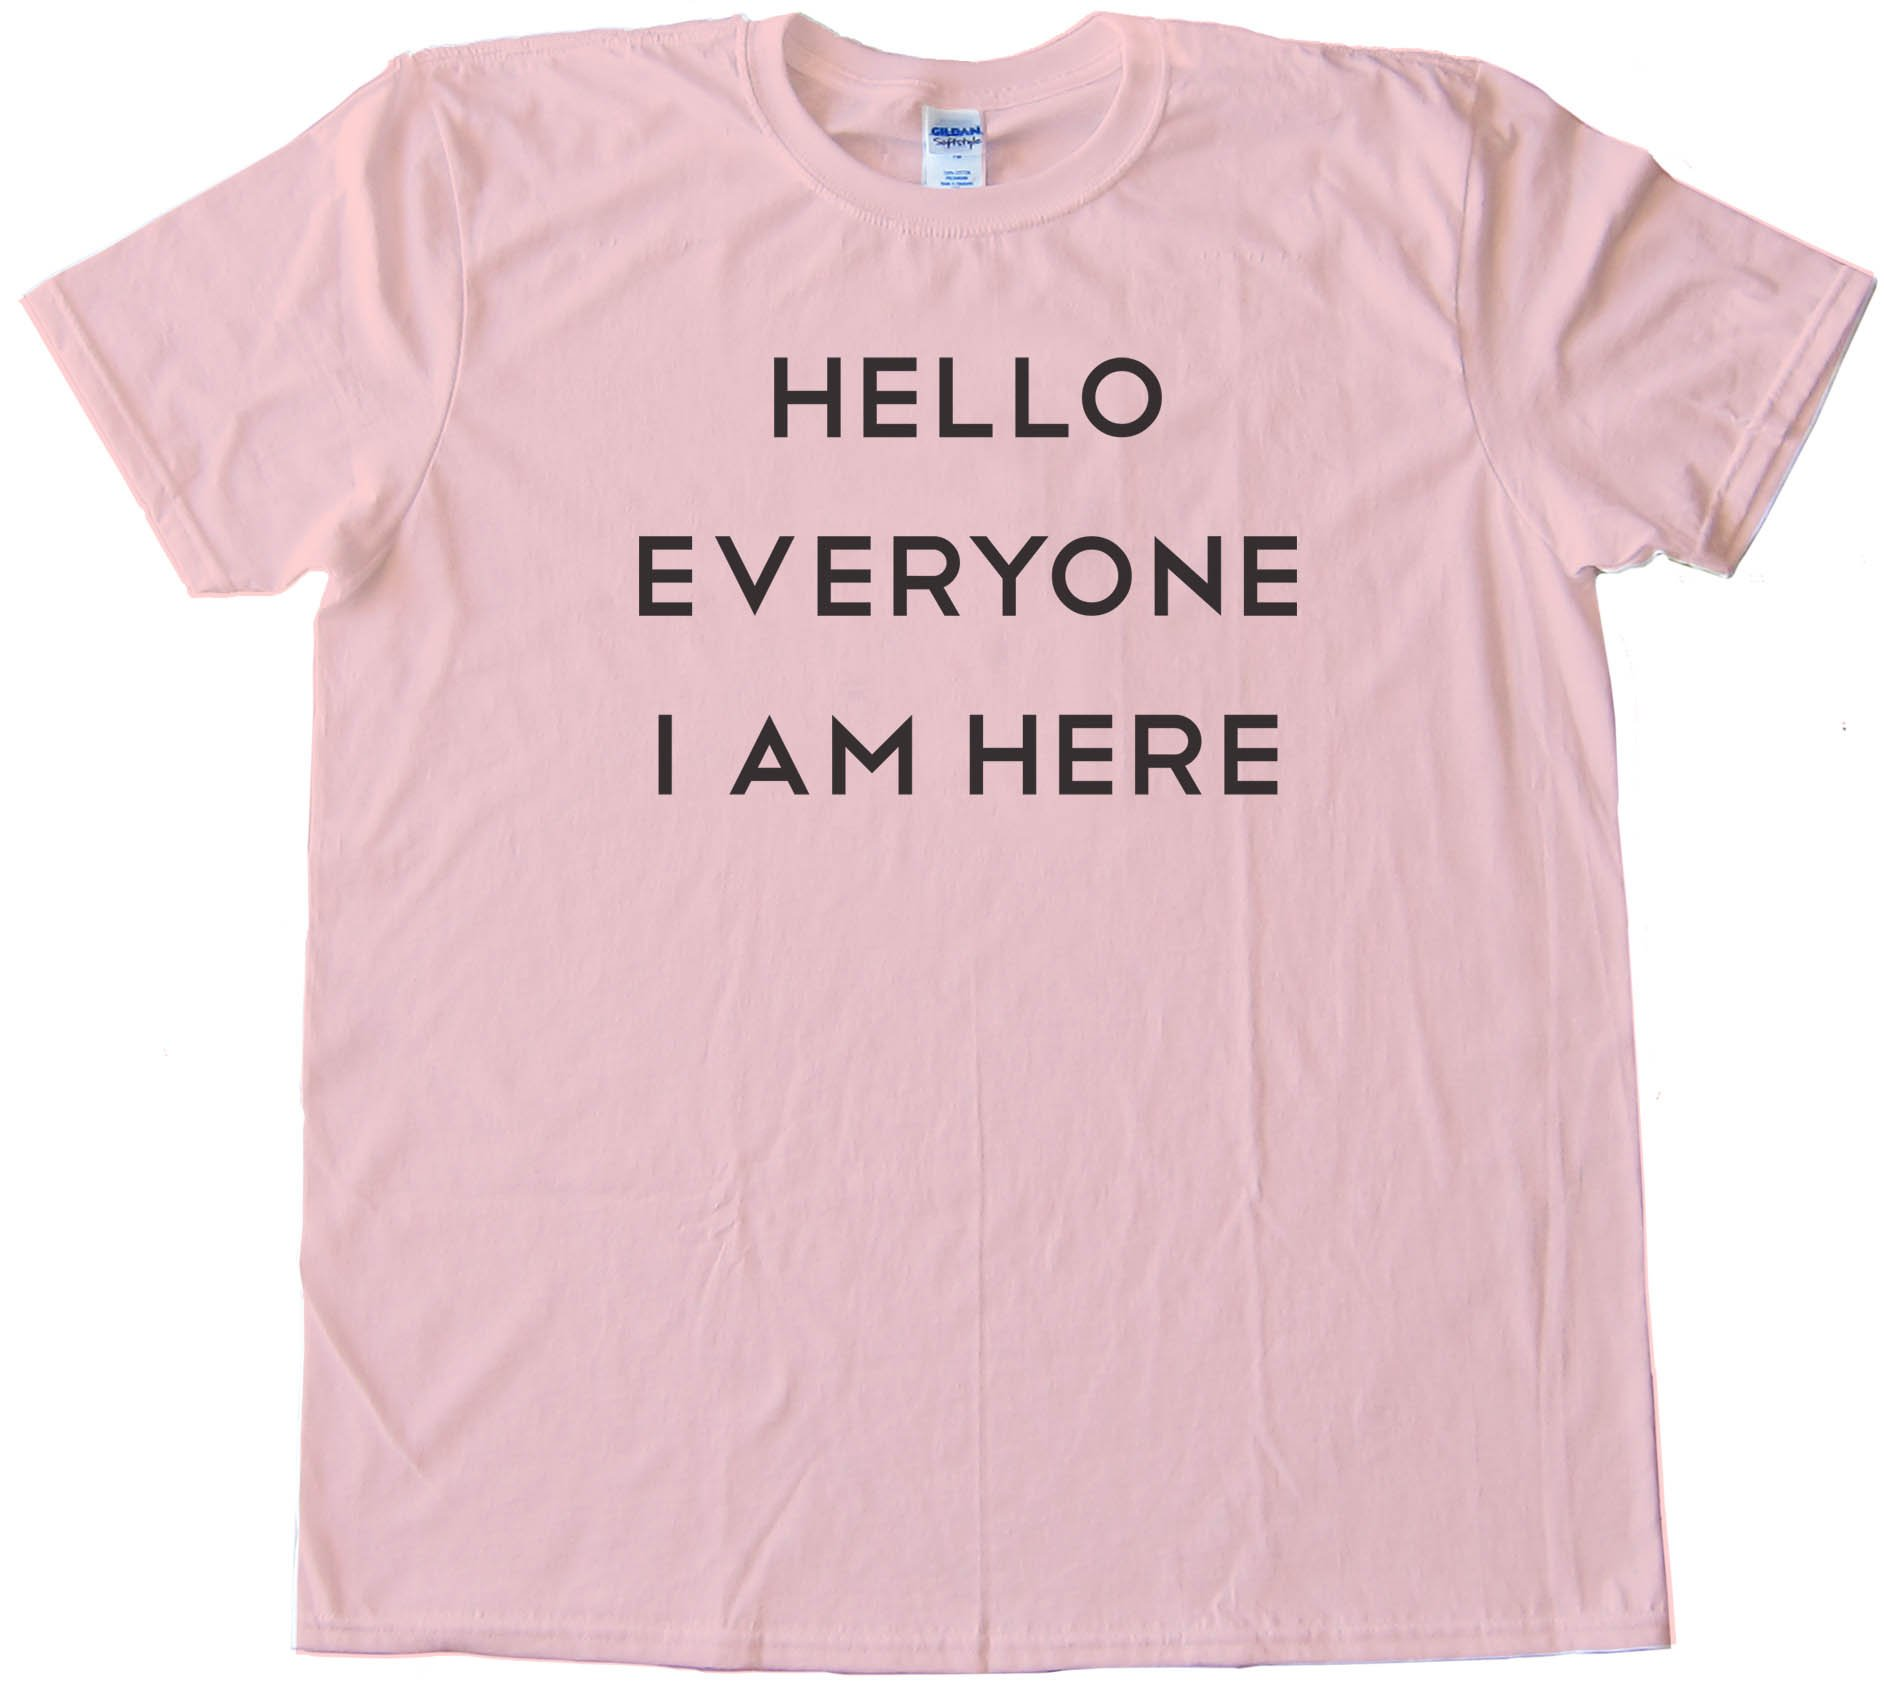 Hello Everyone I Am Here - Tee Shirt